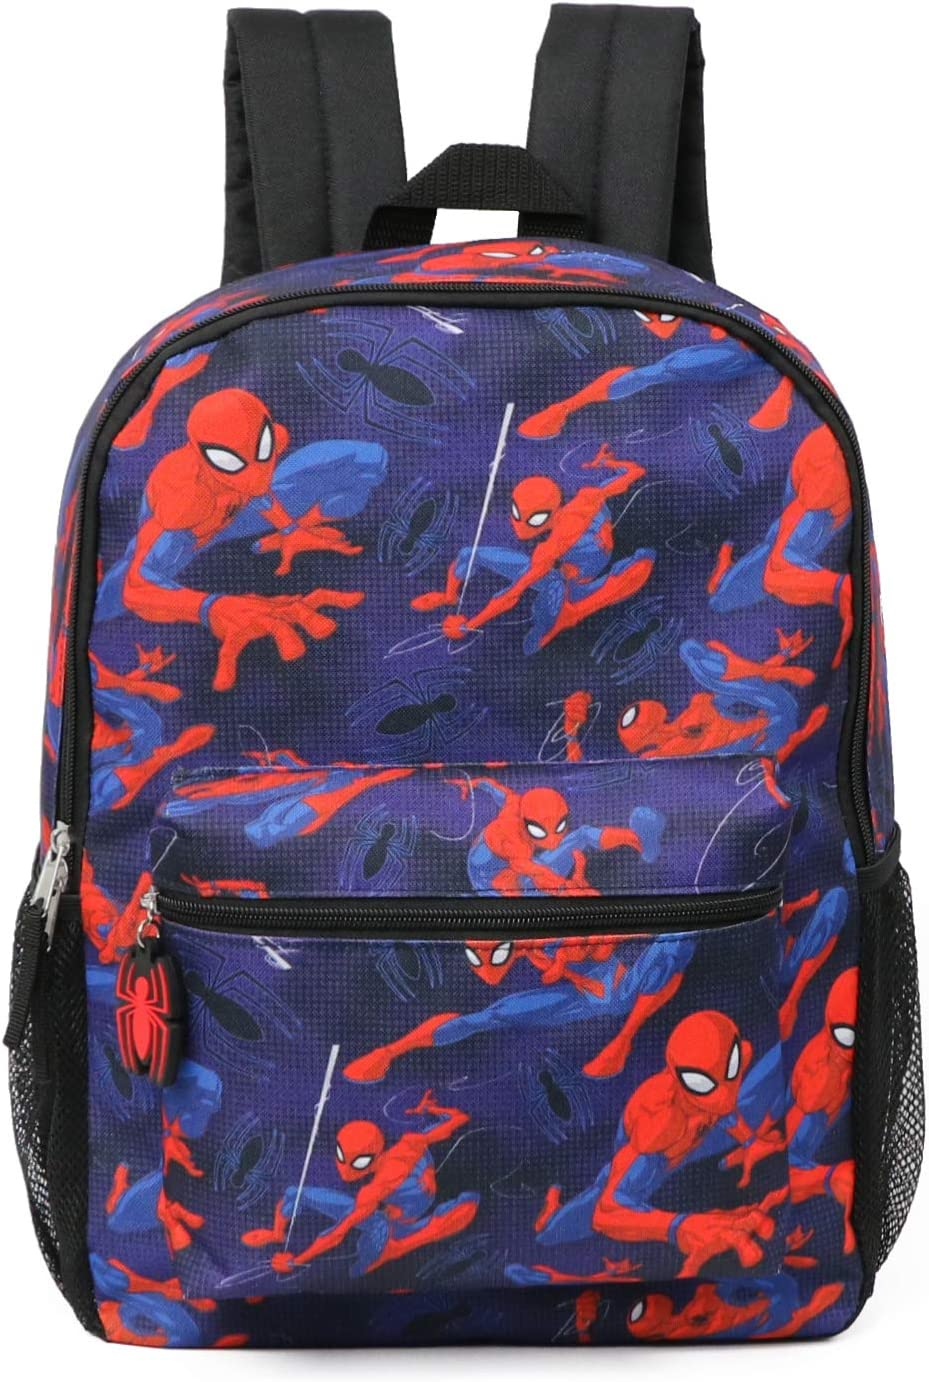 Spiderman Marvel 2021 model All Over Be super welcome Print Size Backpack 16